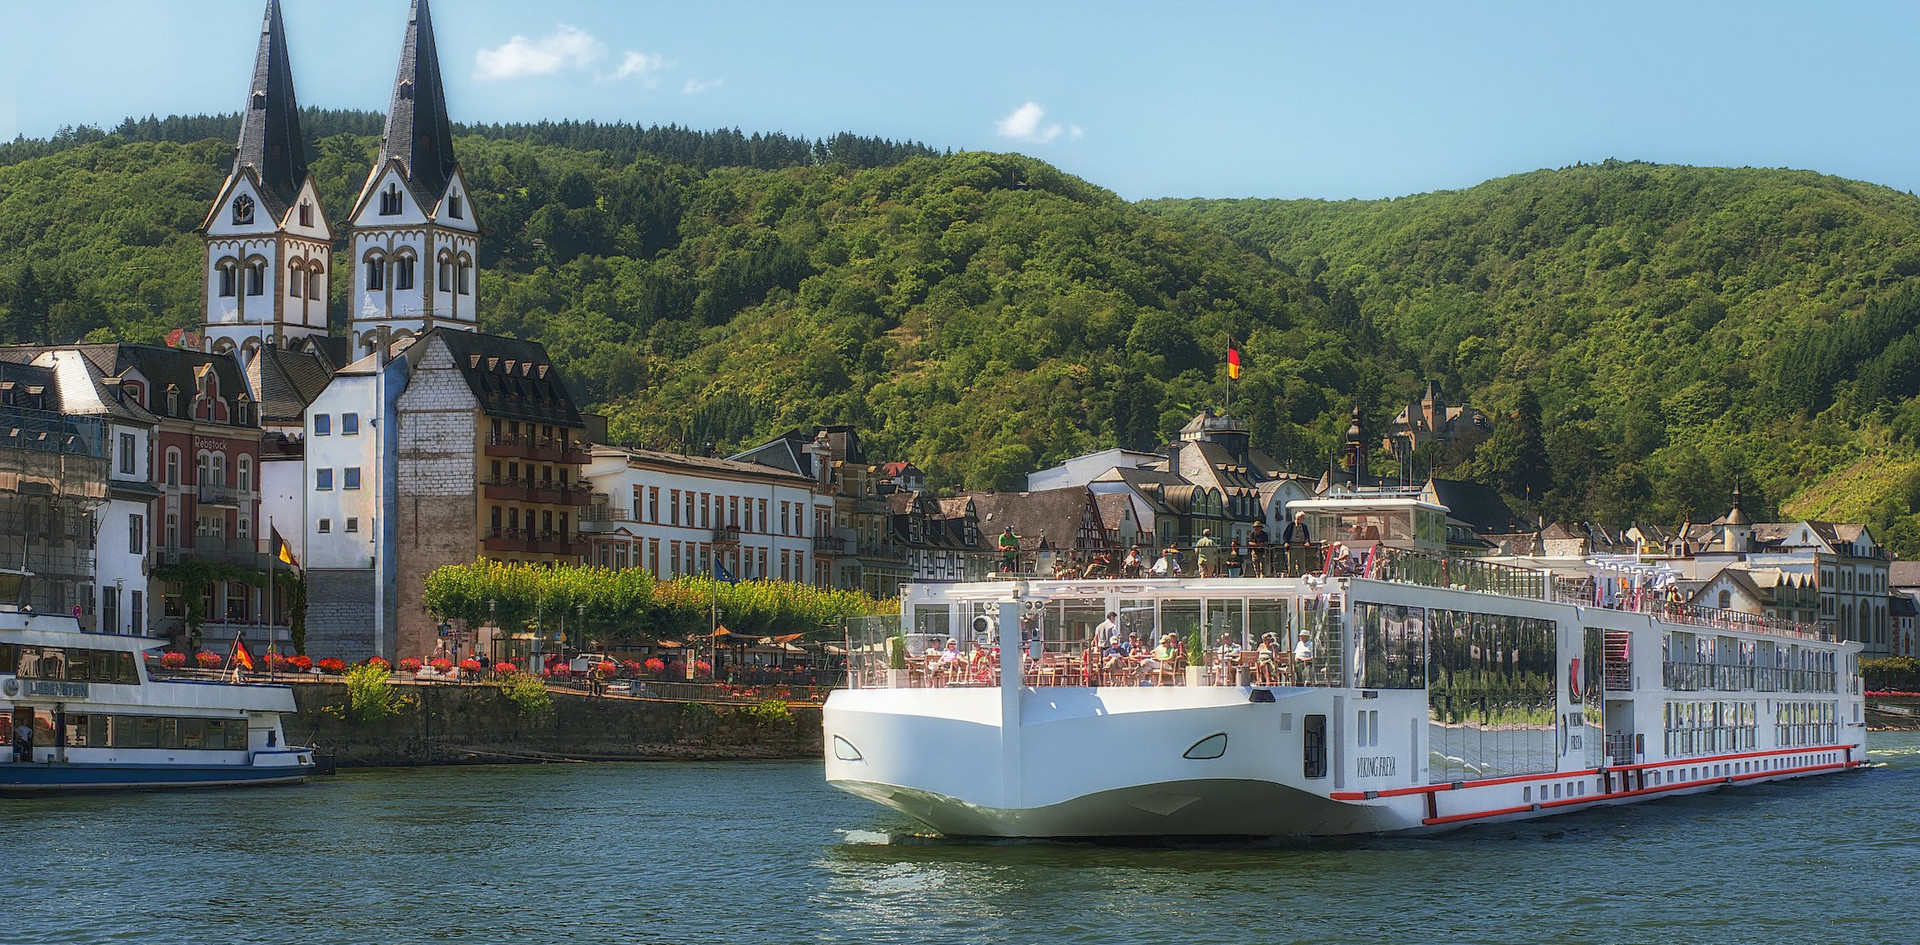 rhine-valley-321290_1920.jpg